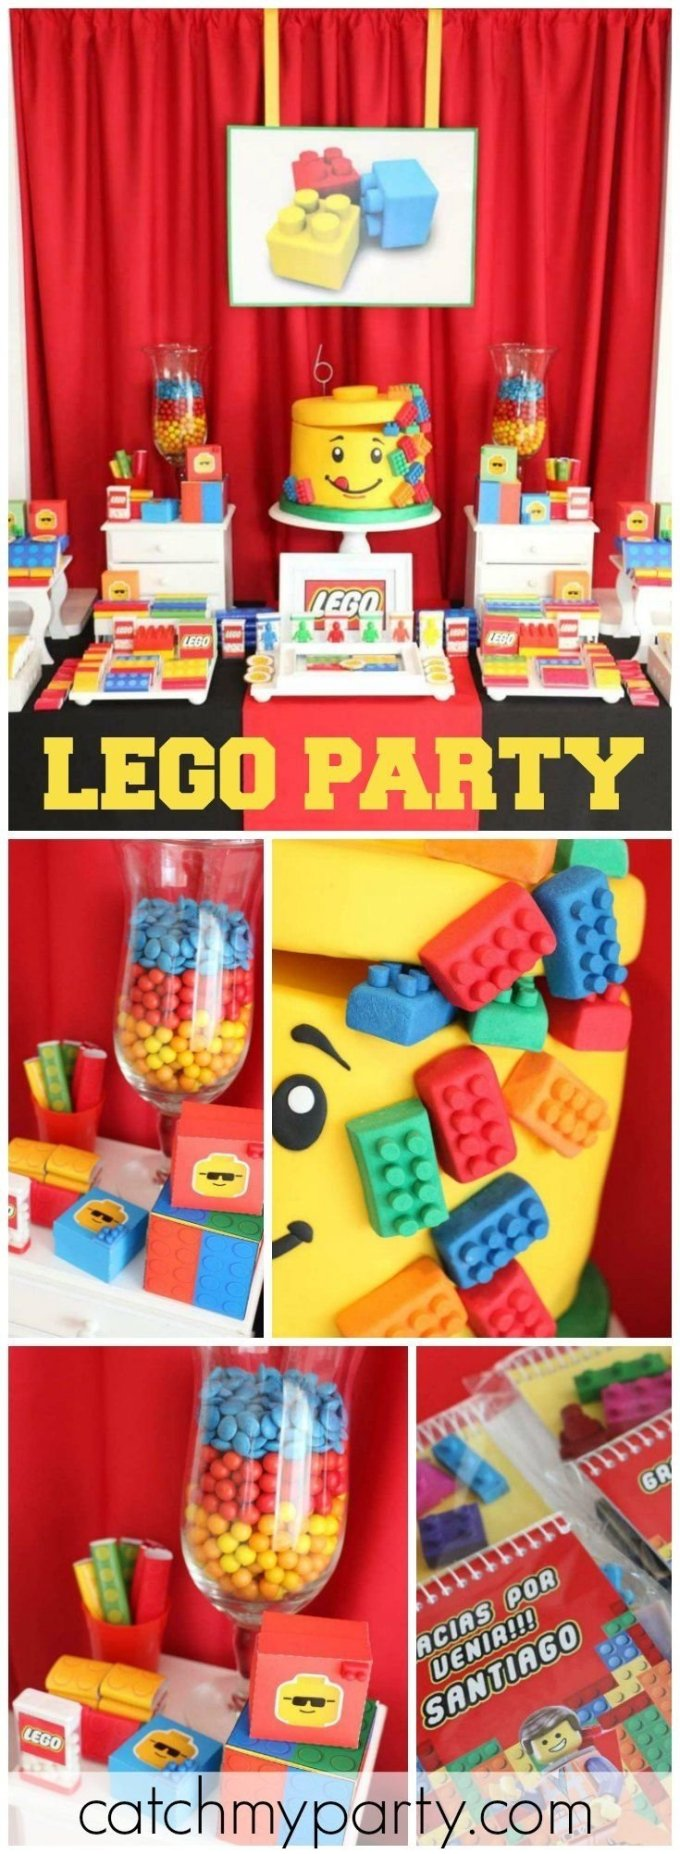 5 Year Old Boy Birthday Party Ideas Entertainment For Visit